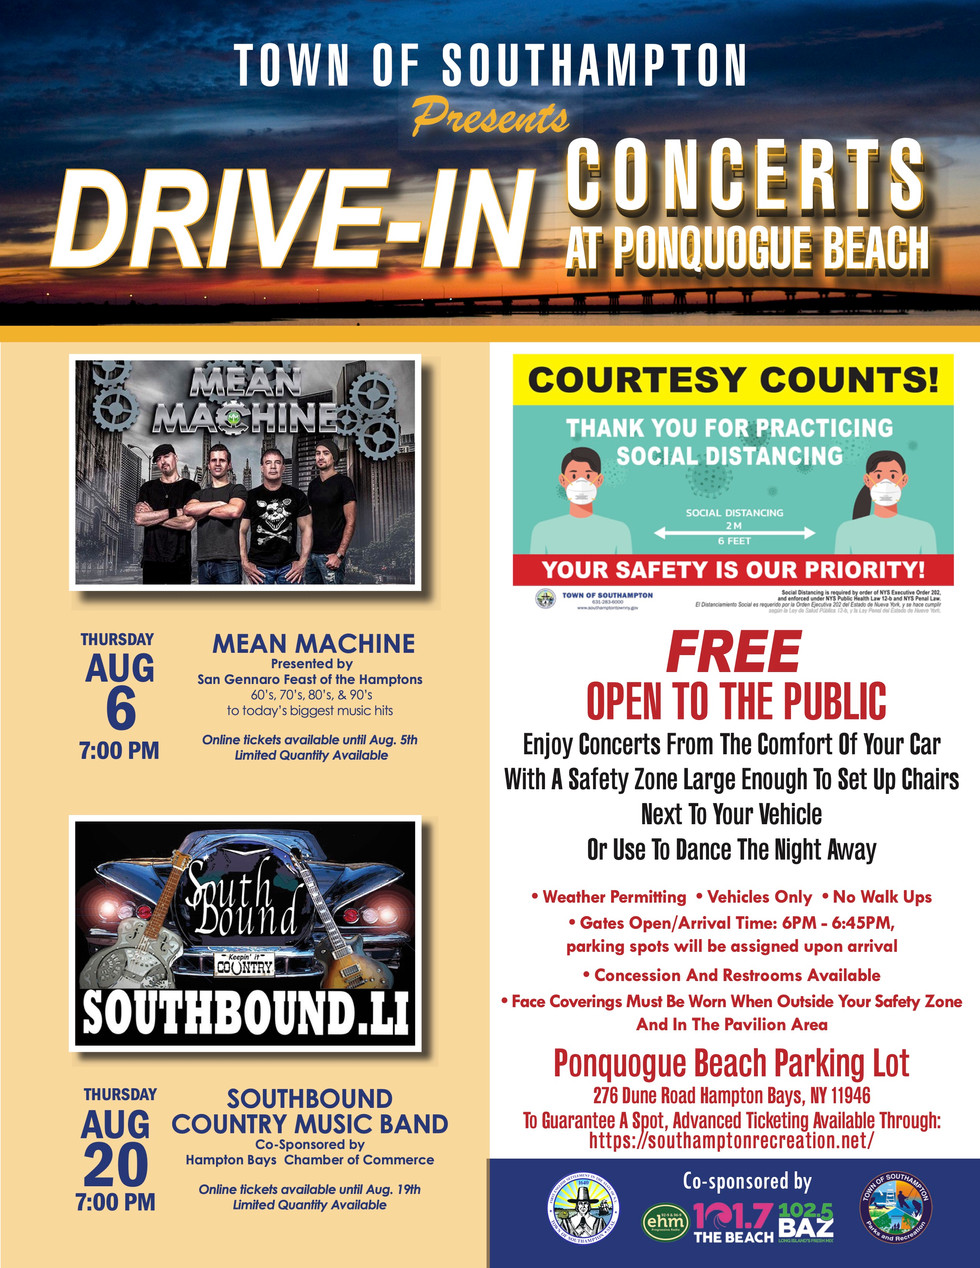 Drive-In Concerts at Ponquogue Beach